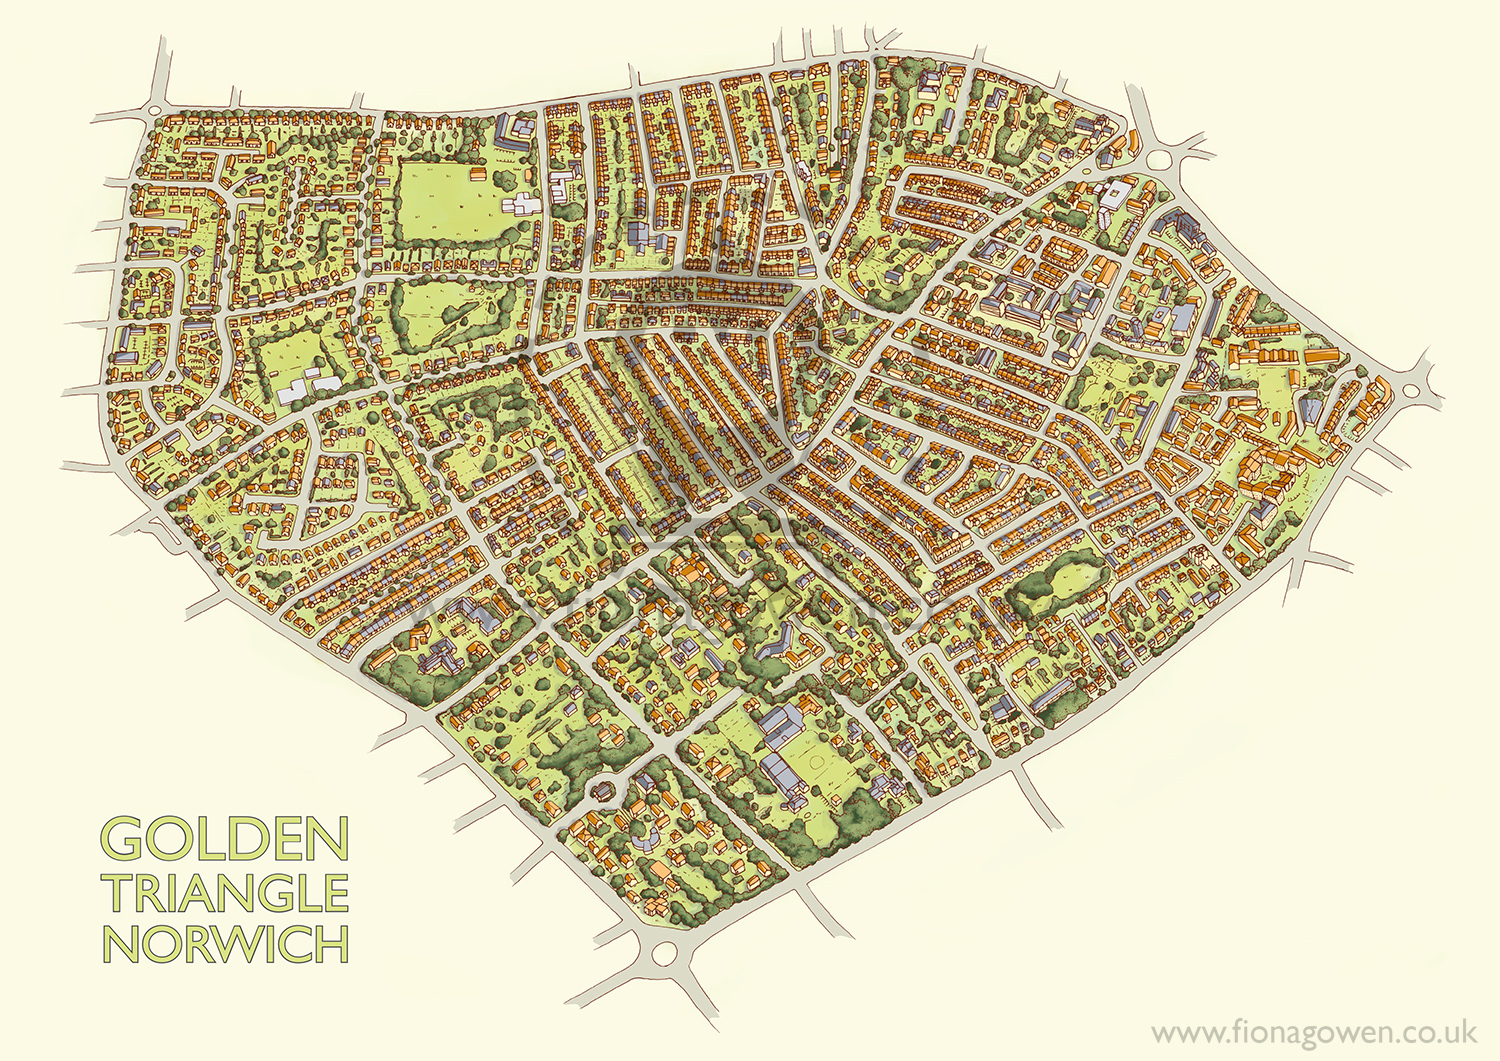 Illustrated map of the Golden Triangle area of Norwich City. Map illustration by illustrator Fiona Gowen